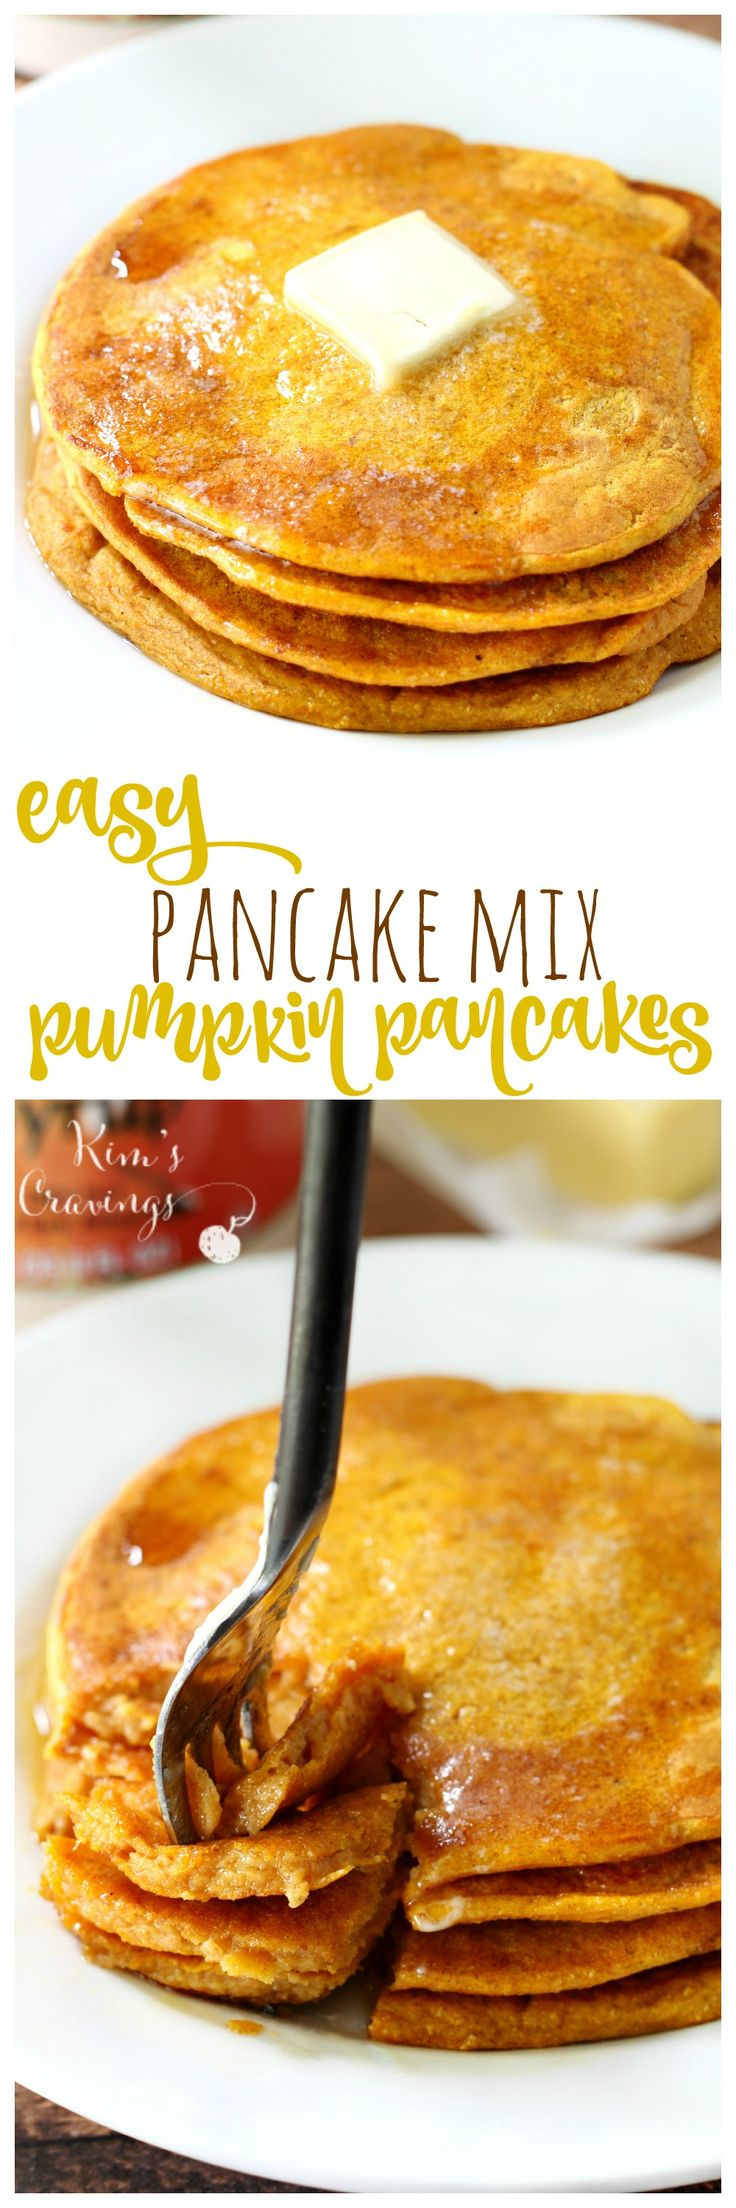 Get festive with breakfast- use your favorite pancake mix for the easiest pumpkin pancakes that can be whipped up in a pinch!